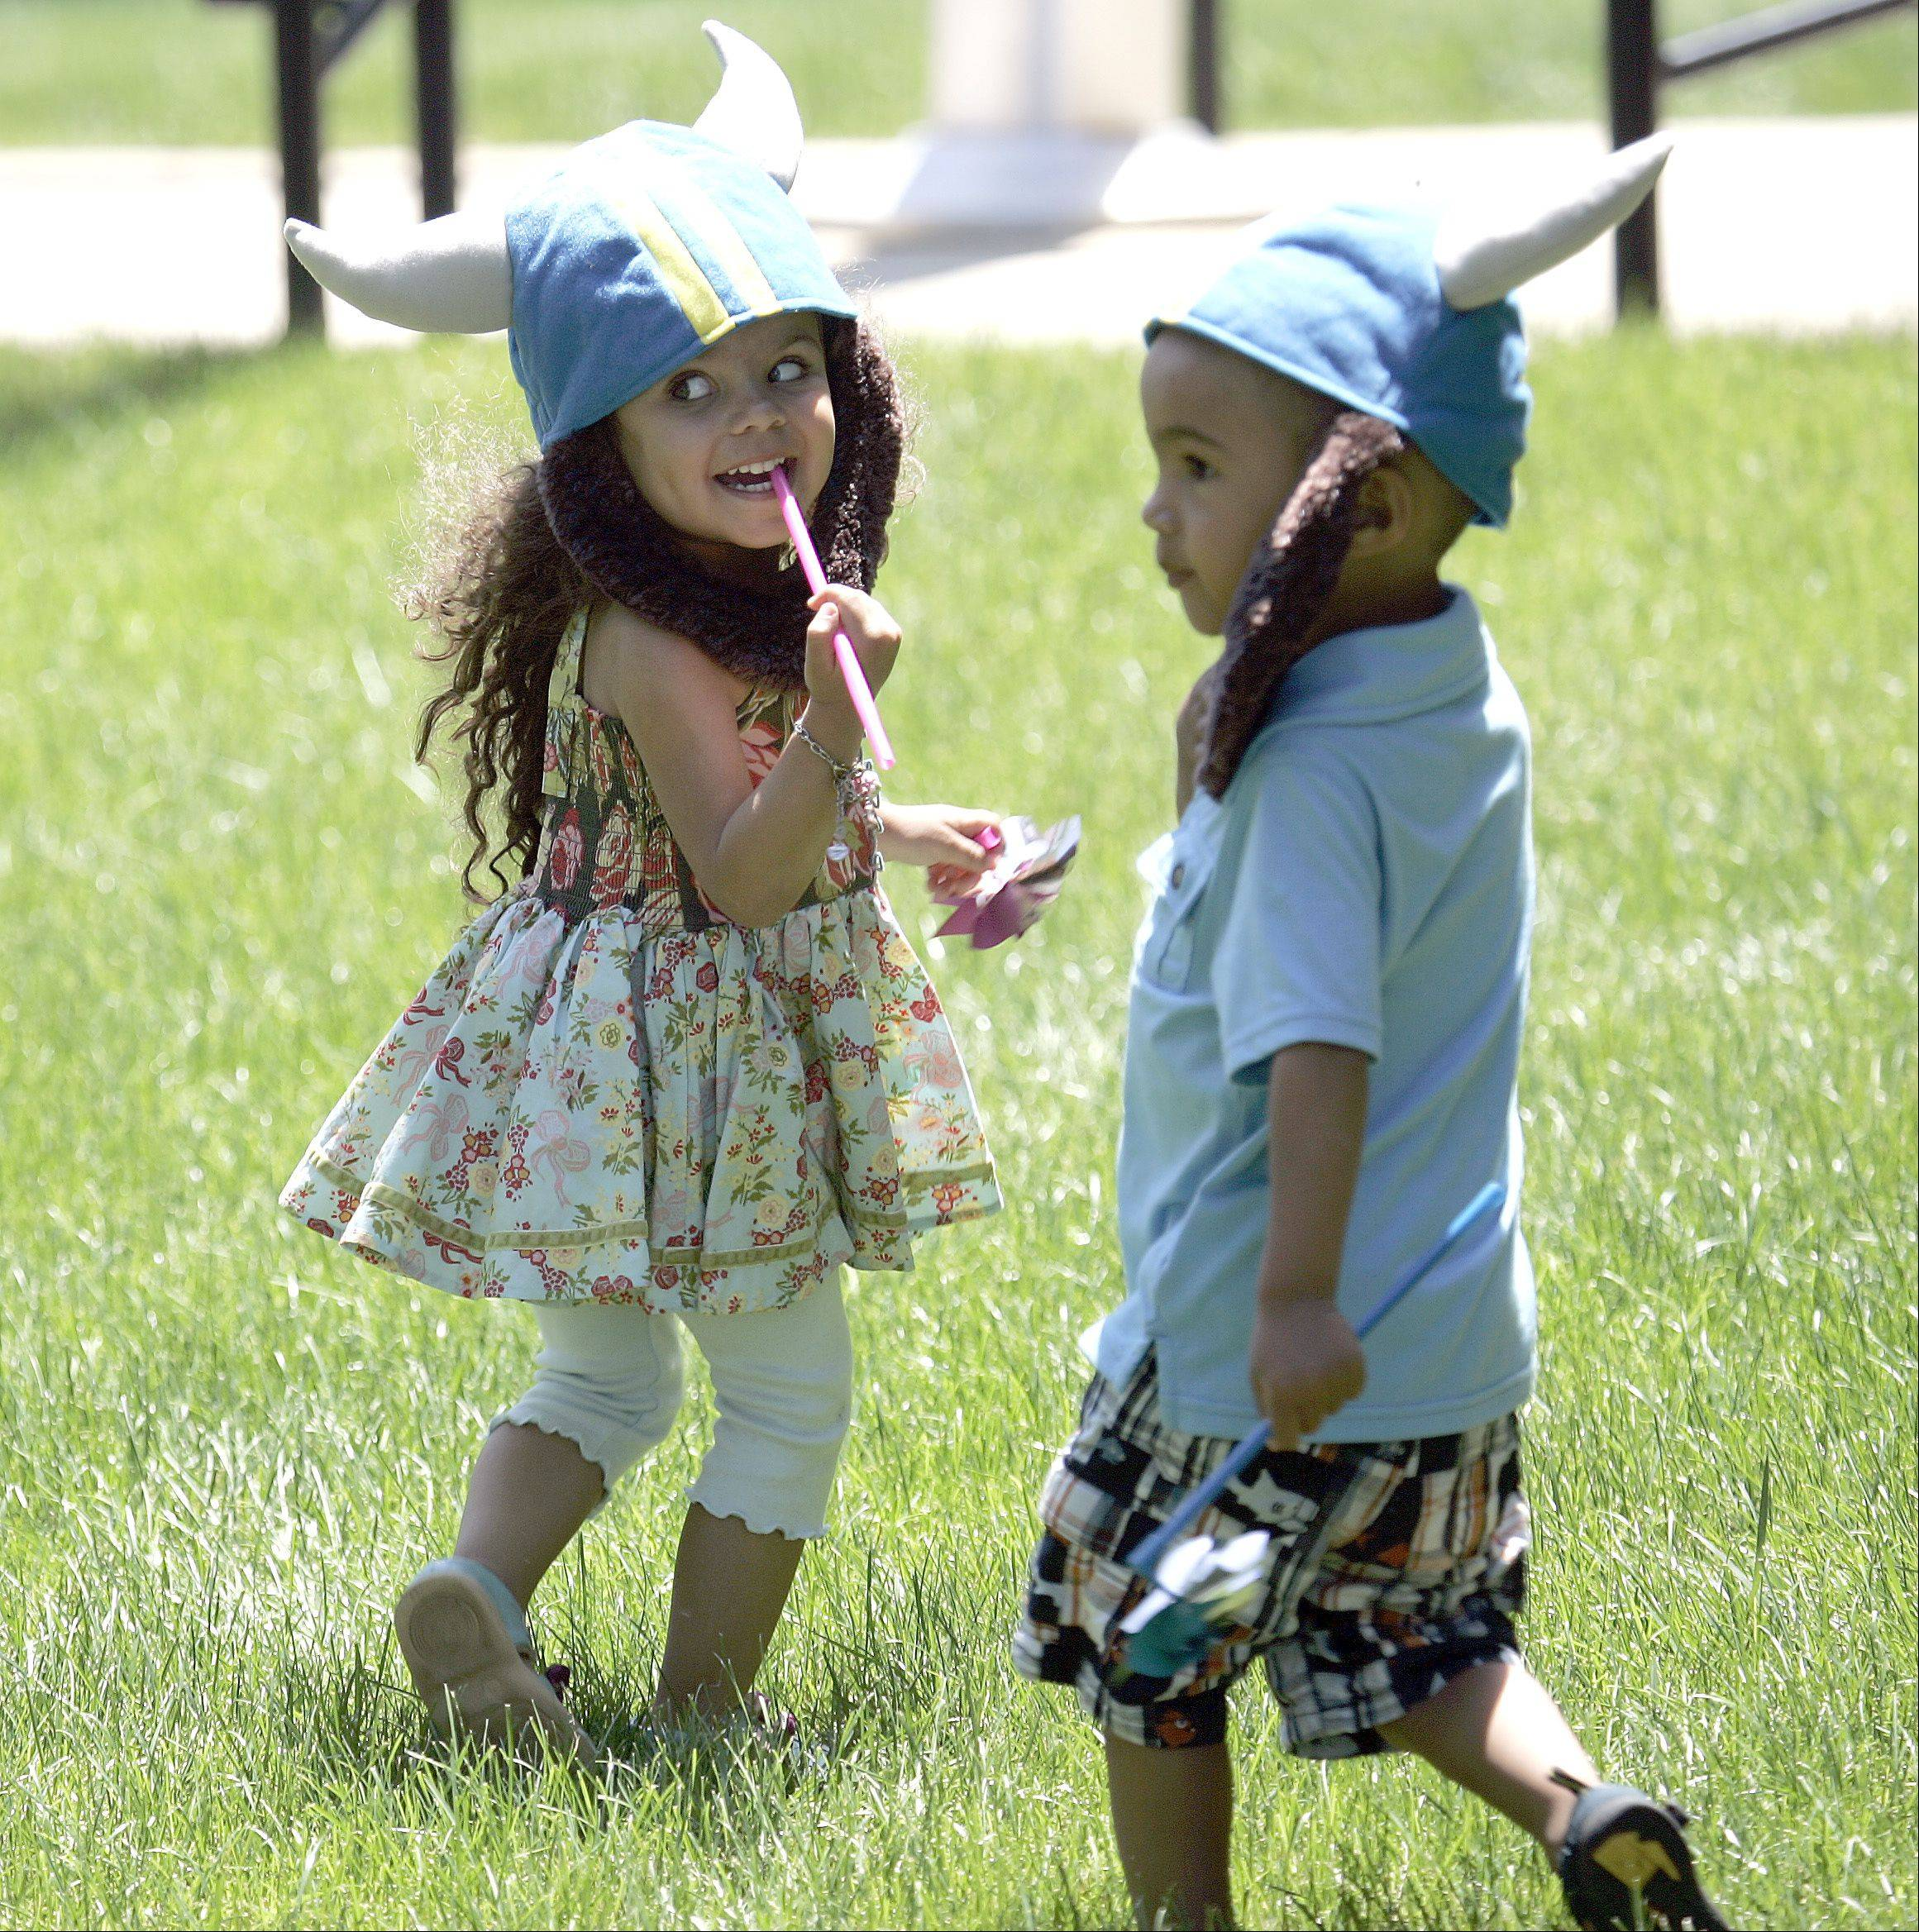 Dancing on the grass as the music kicks off, three-year-old twins, Max Naylor, right, and Charlie, left, of Geneva are complete with Viking hats and beards during a concert on the lawn at Geneva Court House Tuesday during Swedish Days Festival.